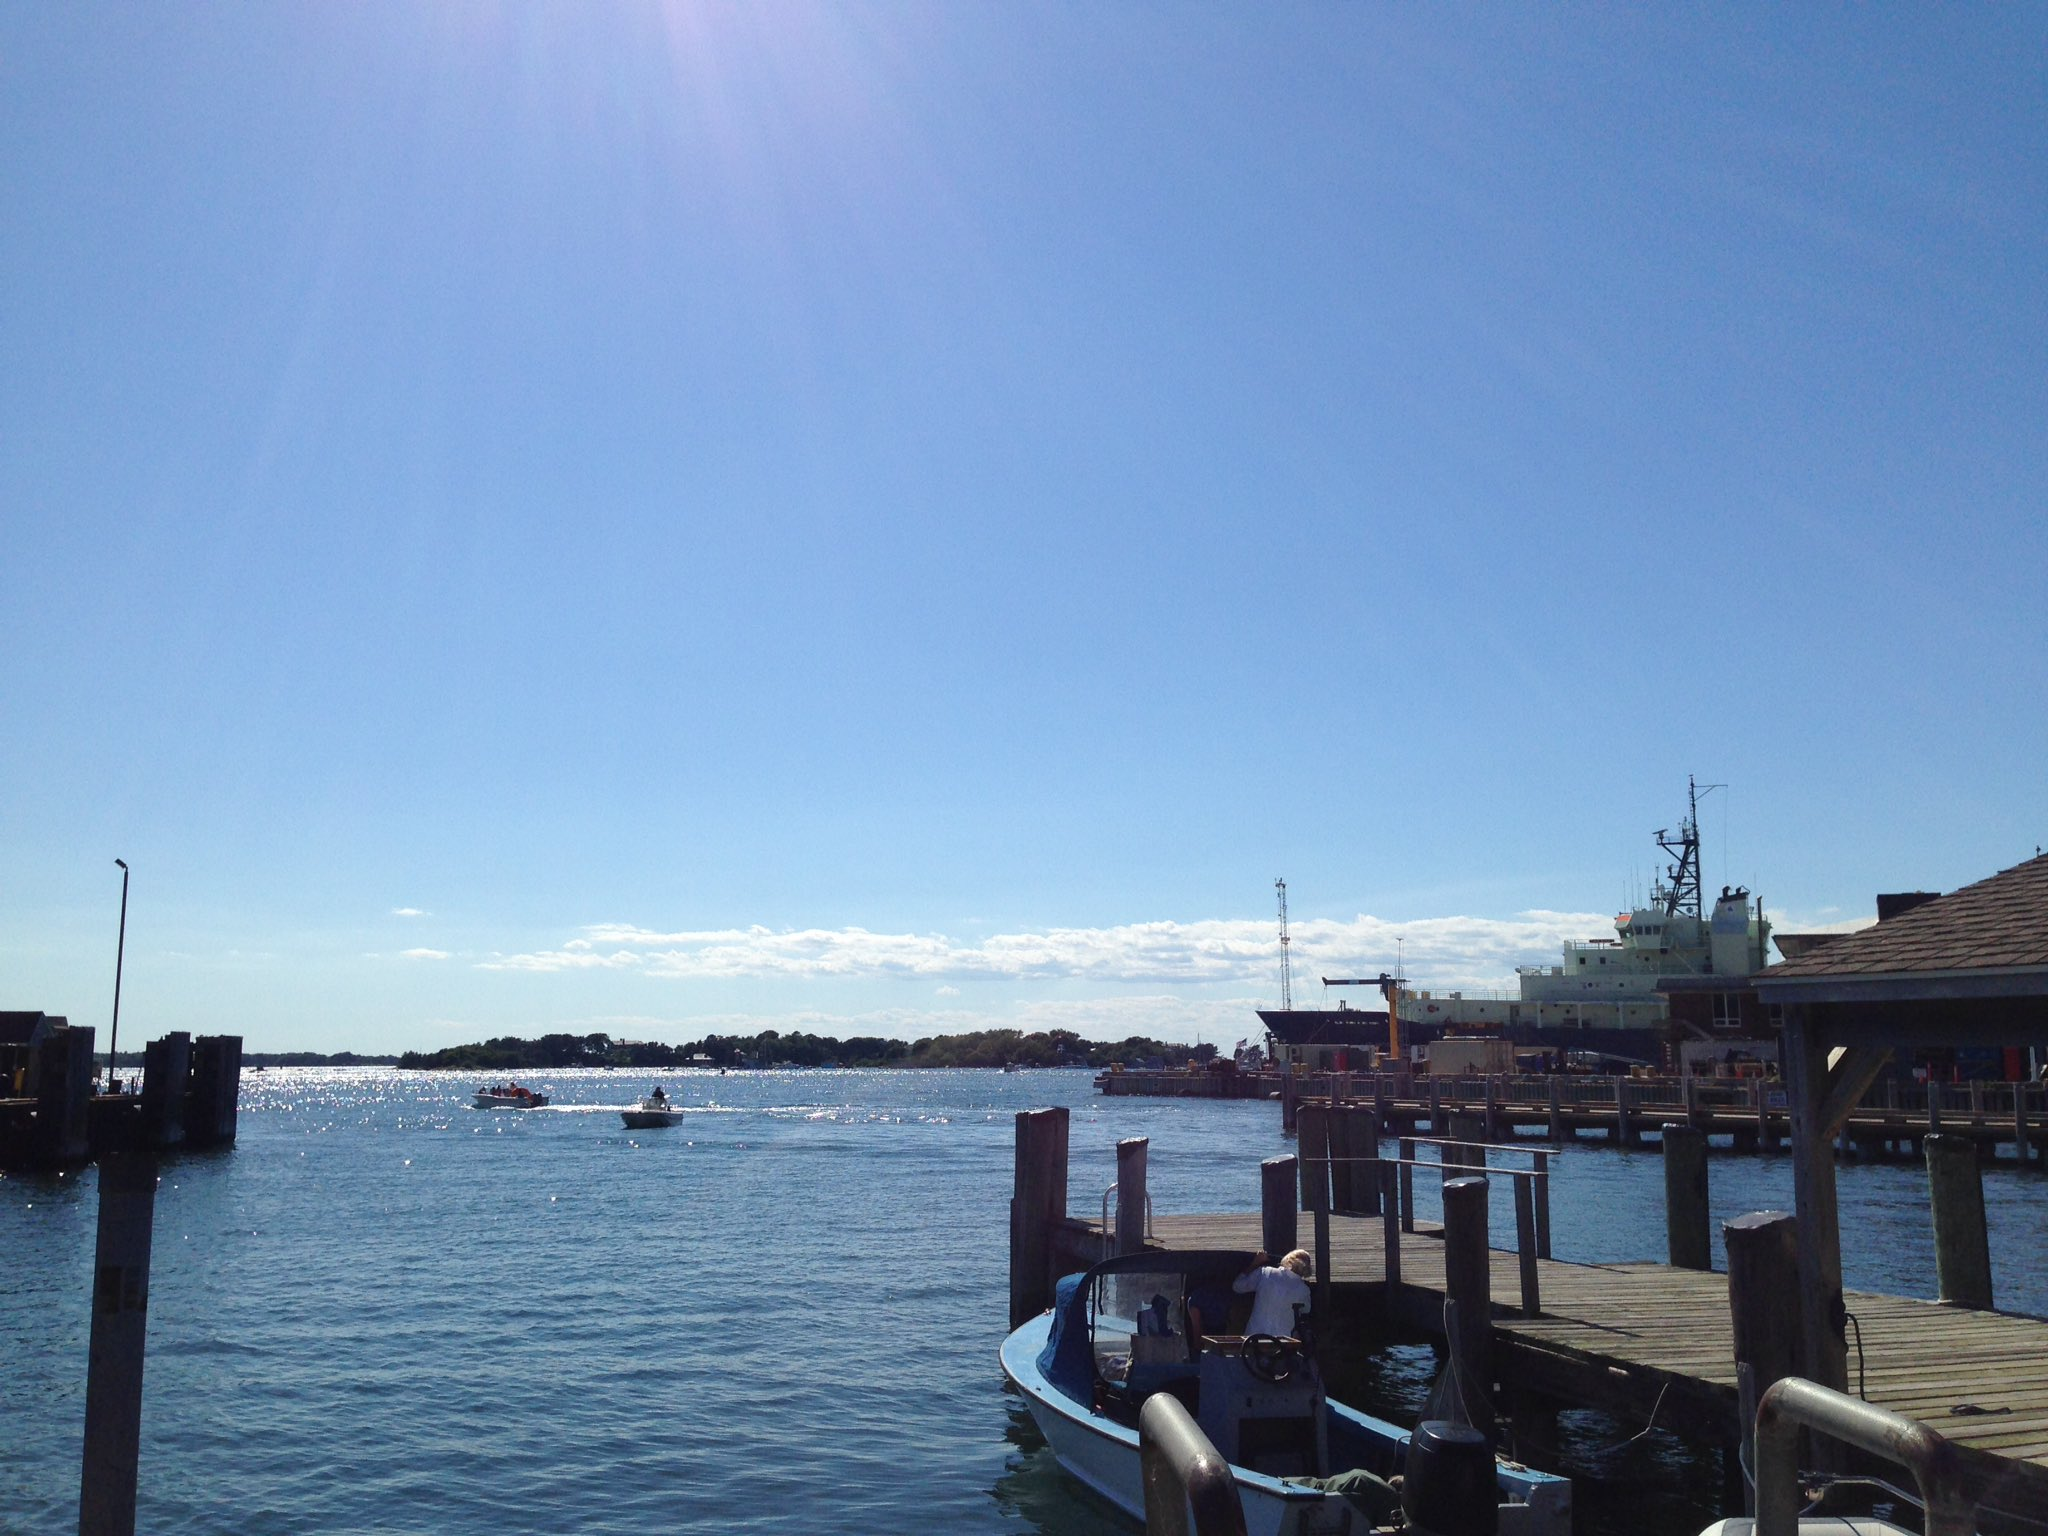 Beautiful day to arrive in Woods Hole. Ready for #STAMPS2017 to begin! @MBLScience https://t.co/O8e3ET7fiT